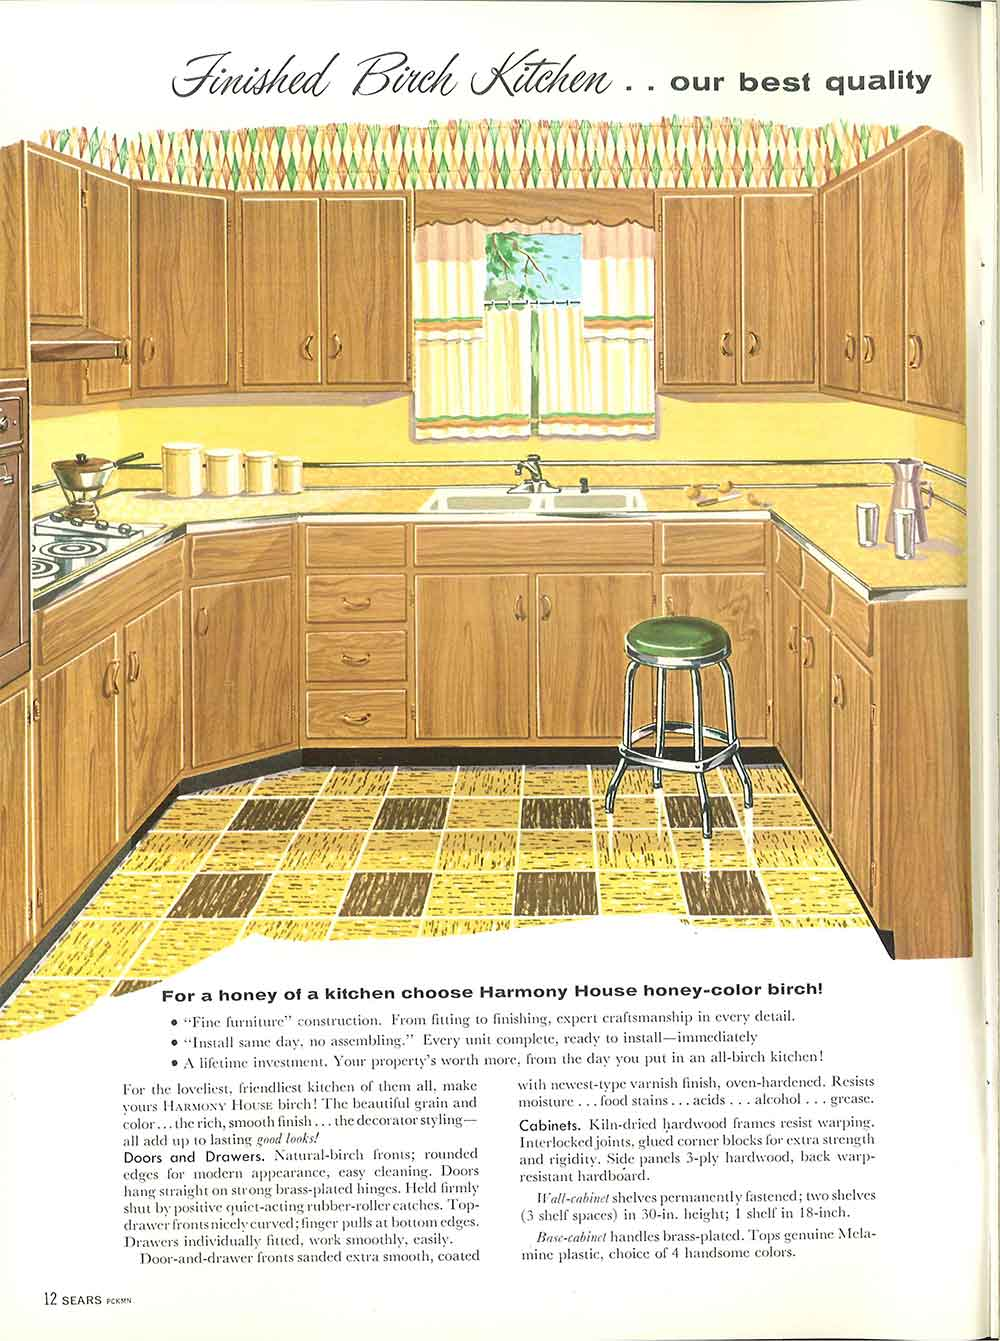 1958 Sears kitchen cabinets and more - 32 page catalog